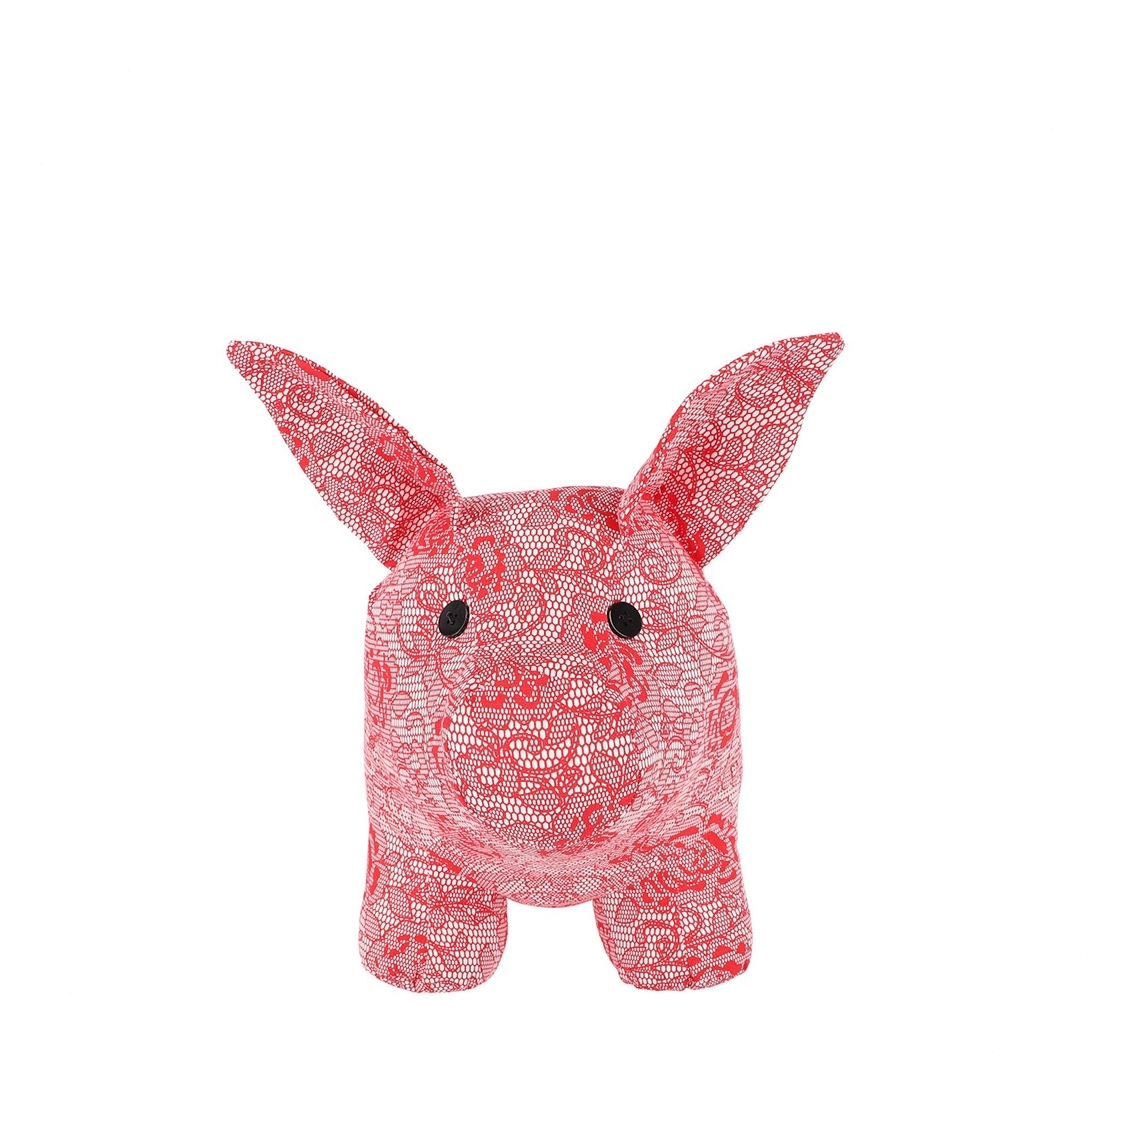 Large Mascot Pig Decoration in Red Lace